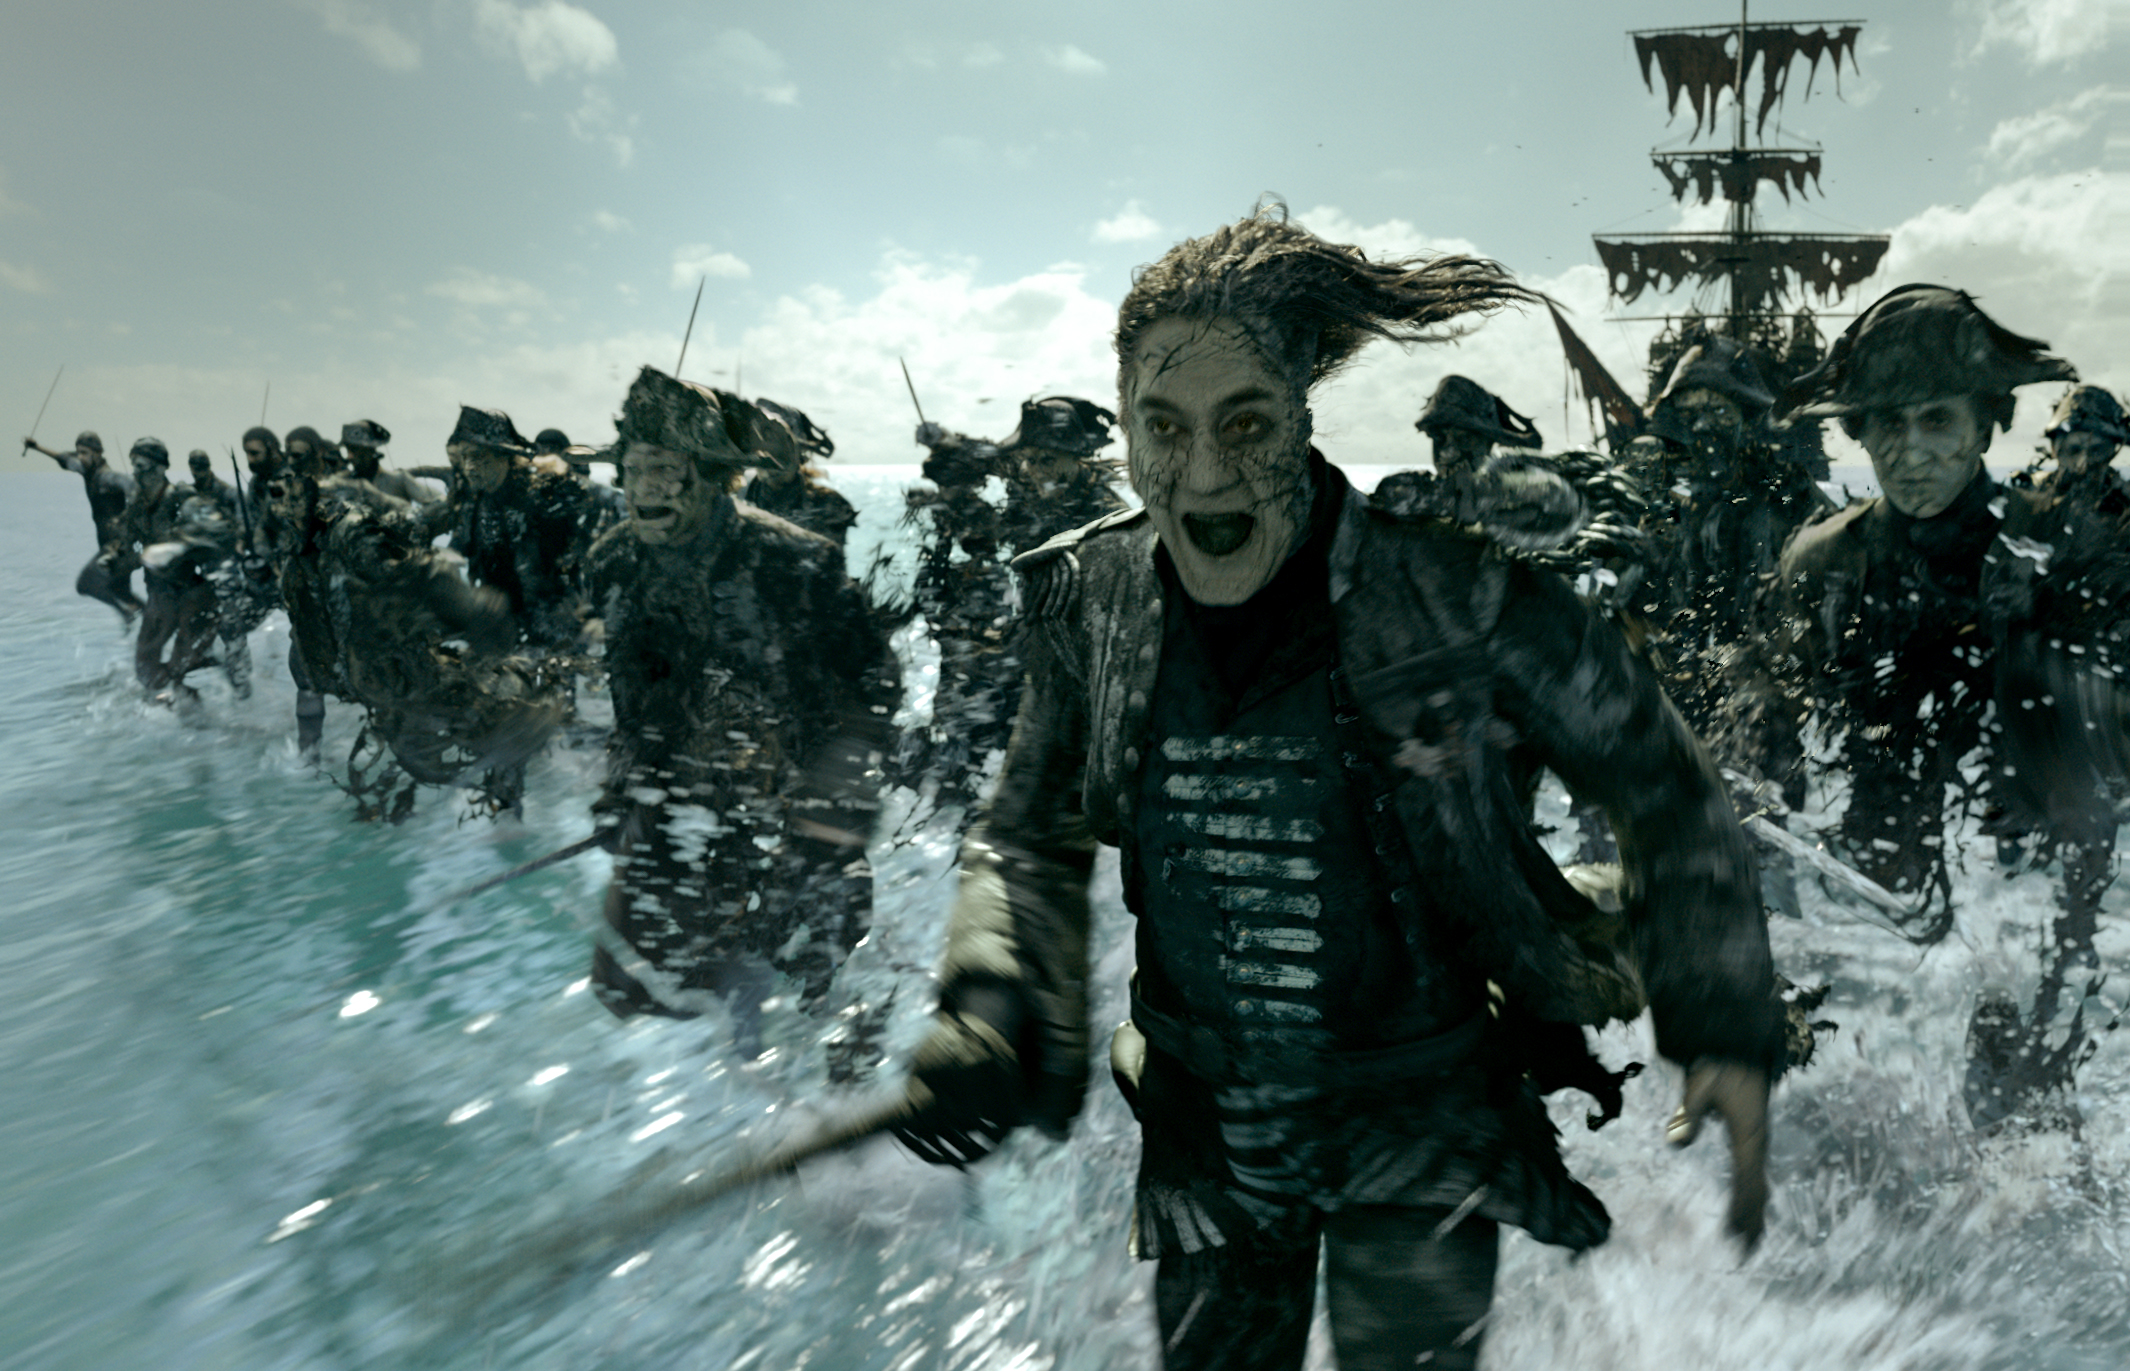 Captain Salazar (Bardem)and his cursed crew. Pretty terrifying right?